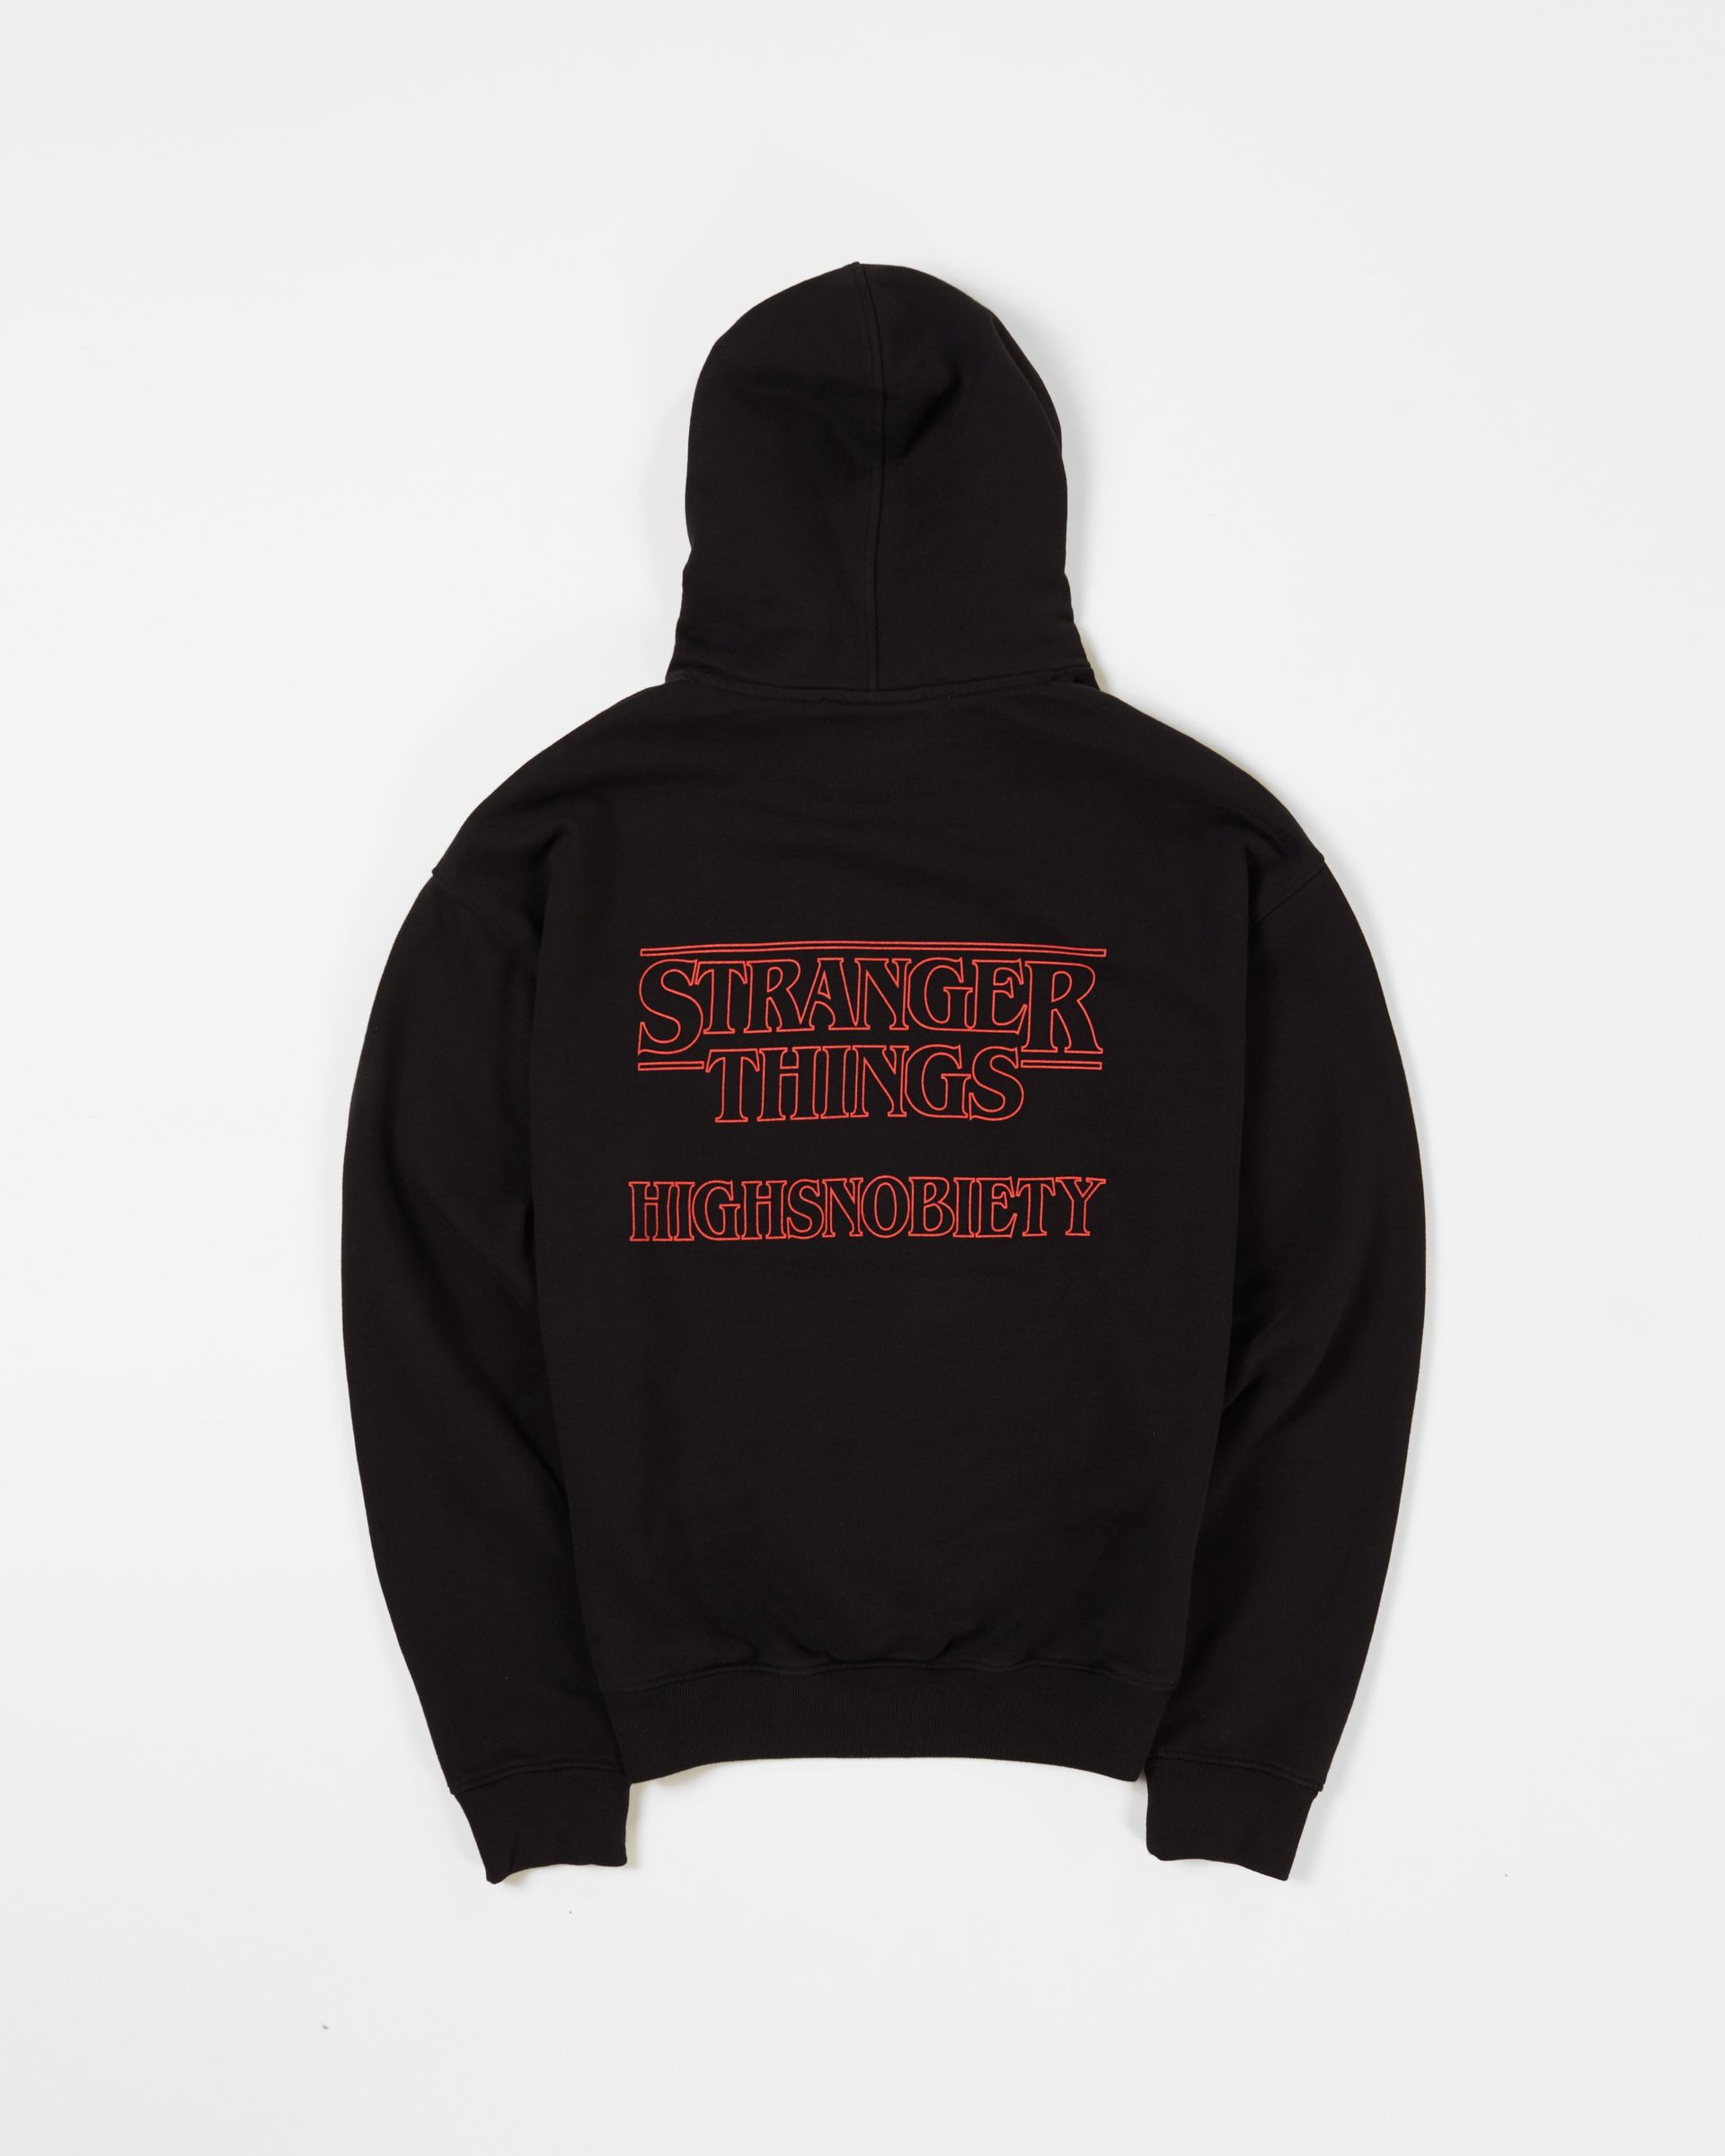 Stranger Things 3 x Highsnobiety Logo Hoodie - Black - Image 1